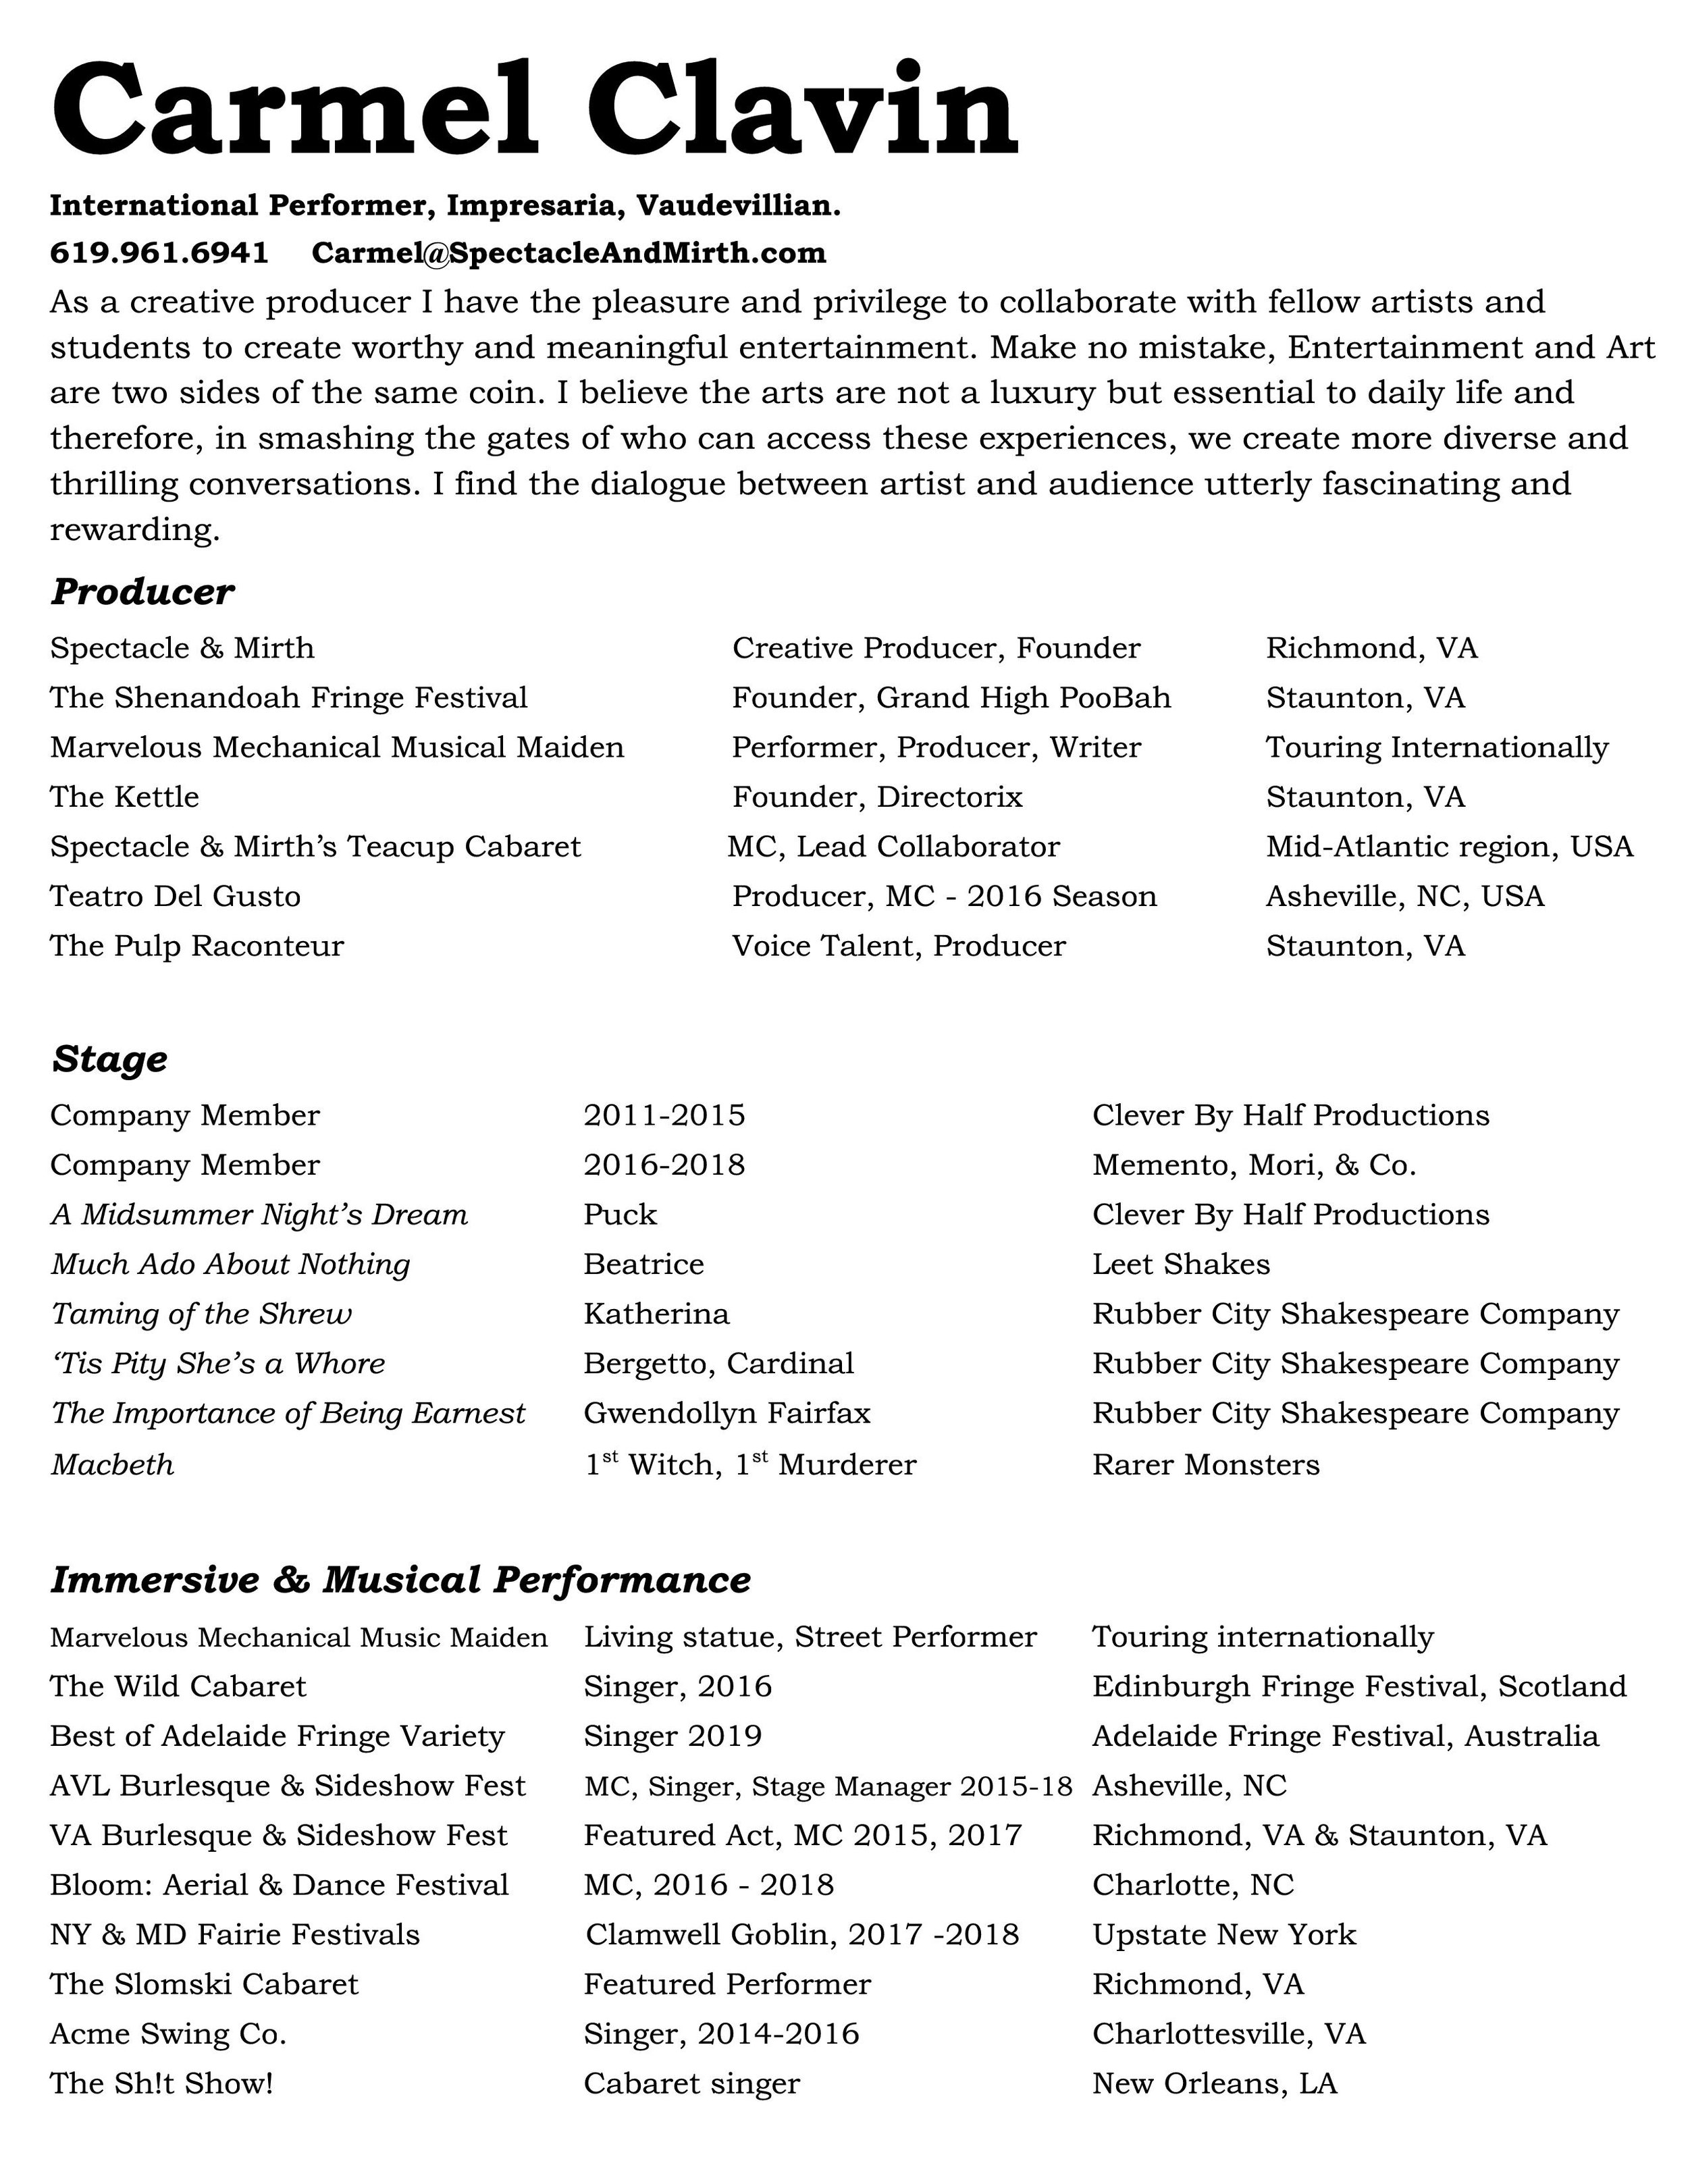 Carmel Clavin Production Resume 2019 (1)-page-001.jpg